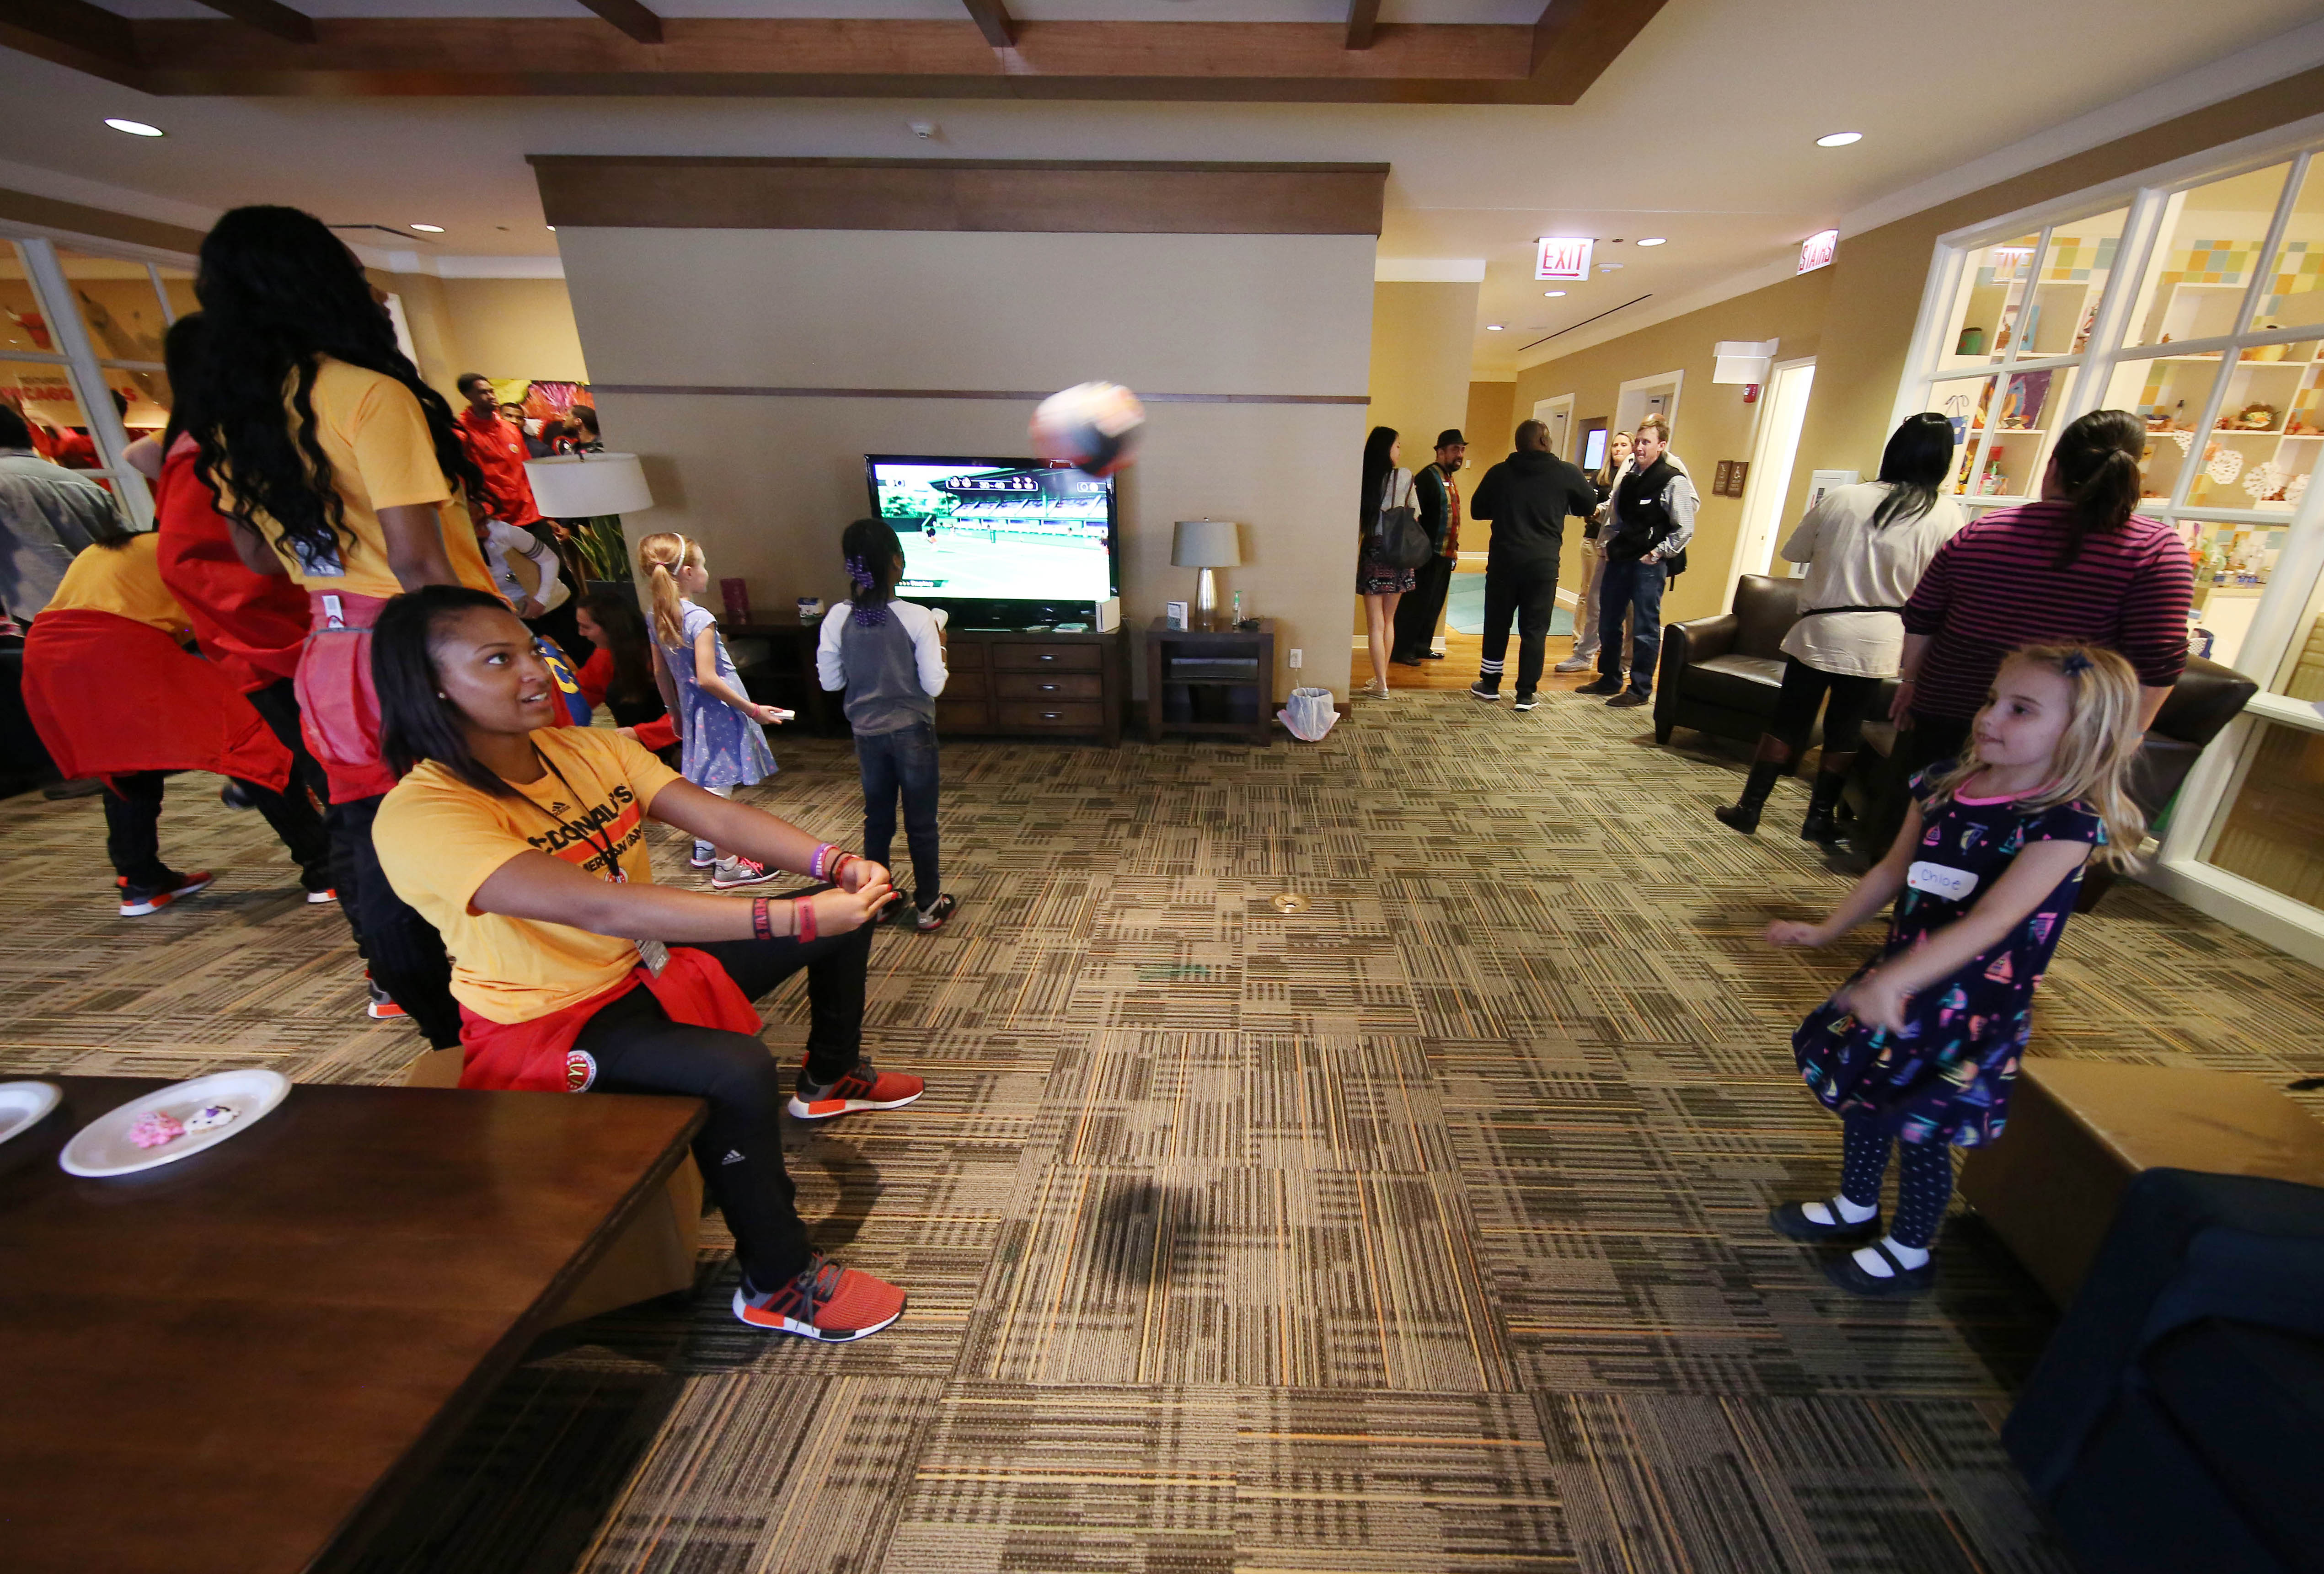 DiJonai Carrington (left) plays catch with a child during a visit to the Ronald McDonald House in downtown Chicago. (Photo credit: Brian Spurlock, USA TODAY Sports)